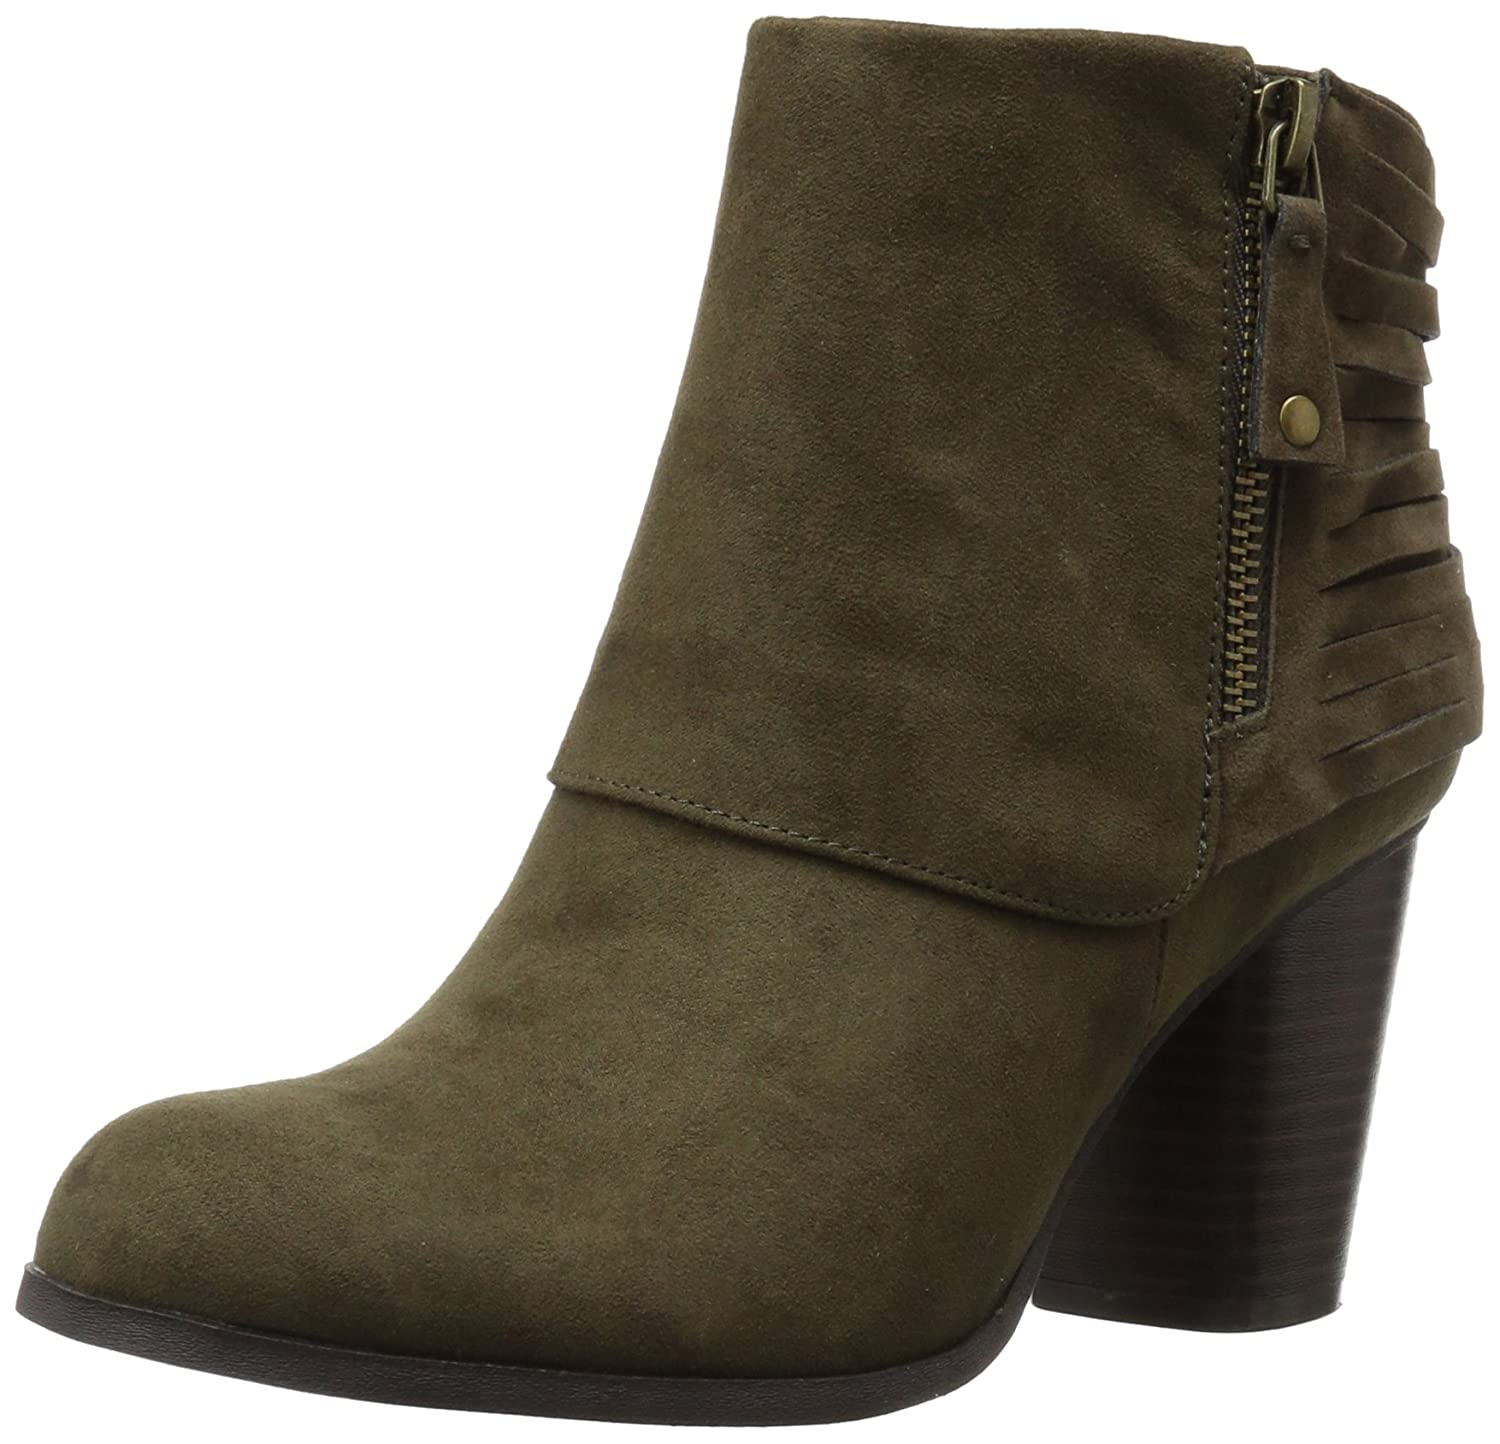 Madden Girl Women's Destory Ankle Bootie B000GDQESI 9.5 B(M) US|Olive Fabric